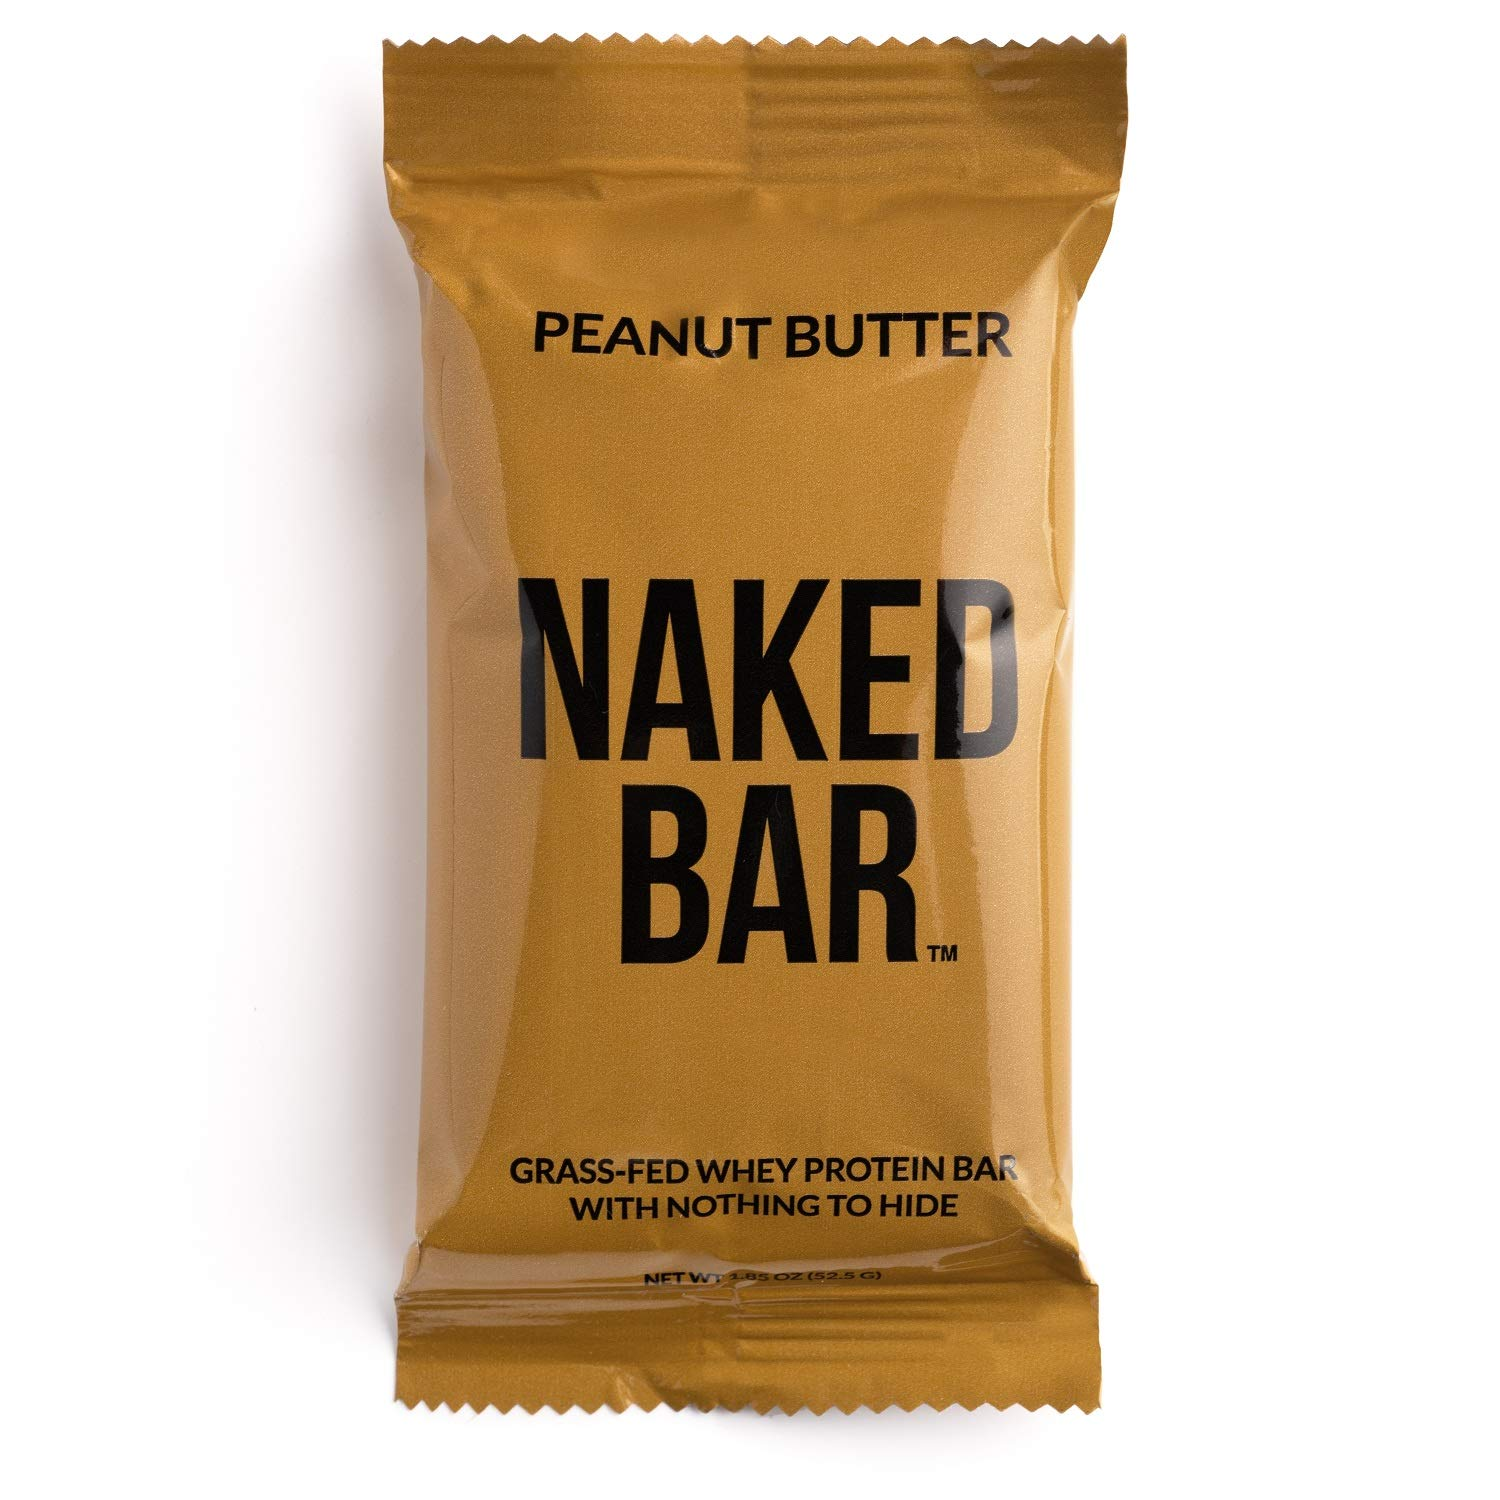 NAKED Peanut Butter Protein Bars - Only 5 Premium Ingredients, Made with Grass-Fed Whey Protein from Small Farms - Gluten Free Protein Bars, Soy Free, No GMOs, No Artificial Sweeteners - 12 Pack